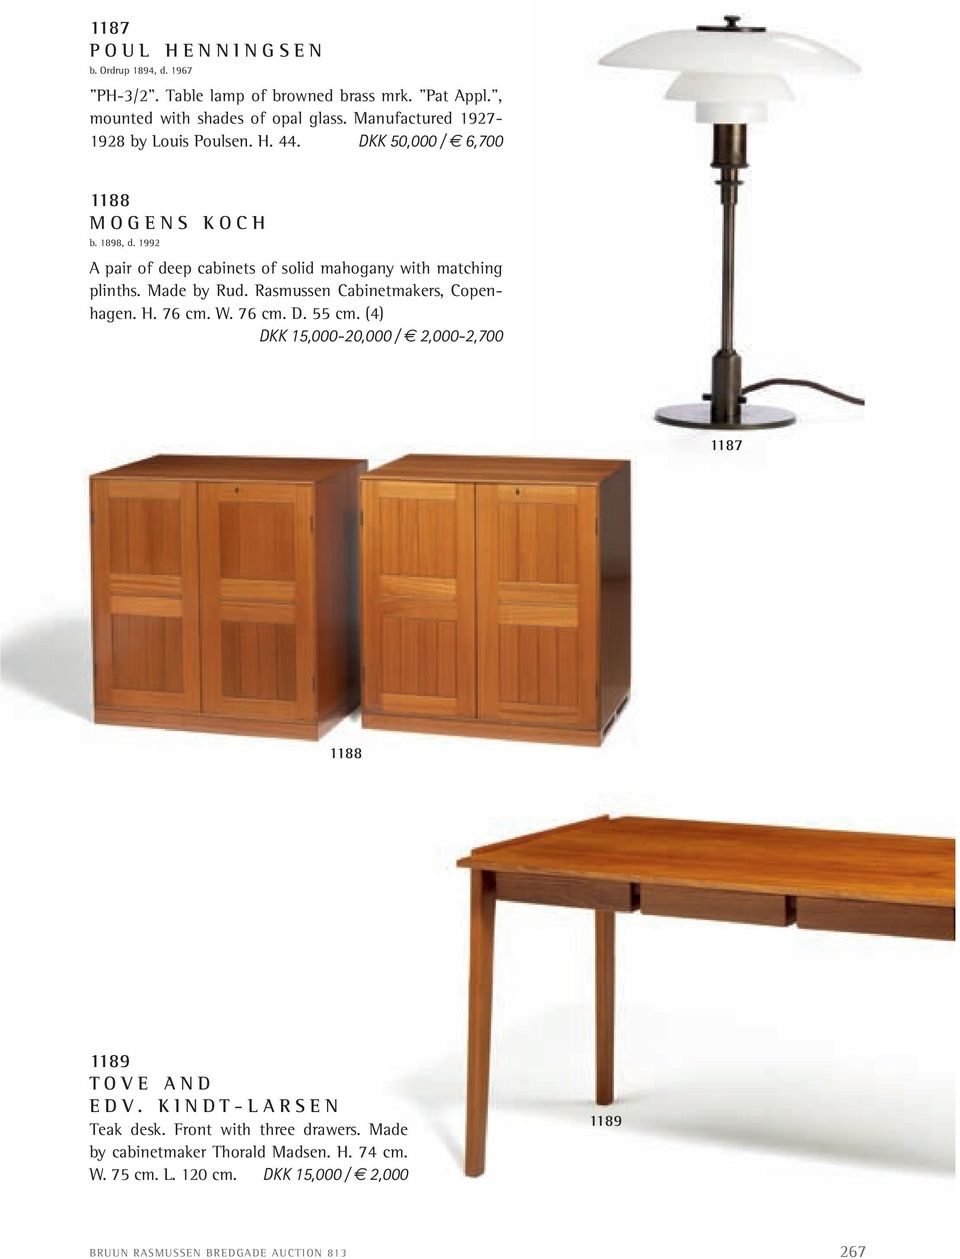 1992 A pair of deep cabinets of solid mahogany with matching plinths. Made by Rud. Rasmussen cabinetmakers, copenhagen. H. 76 cm. W. 76 cm. D. 55 cm.